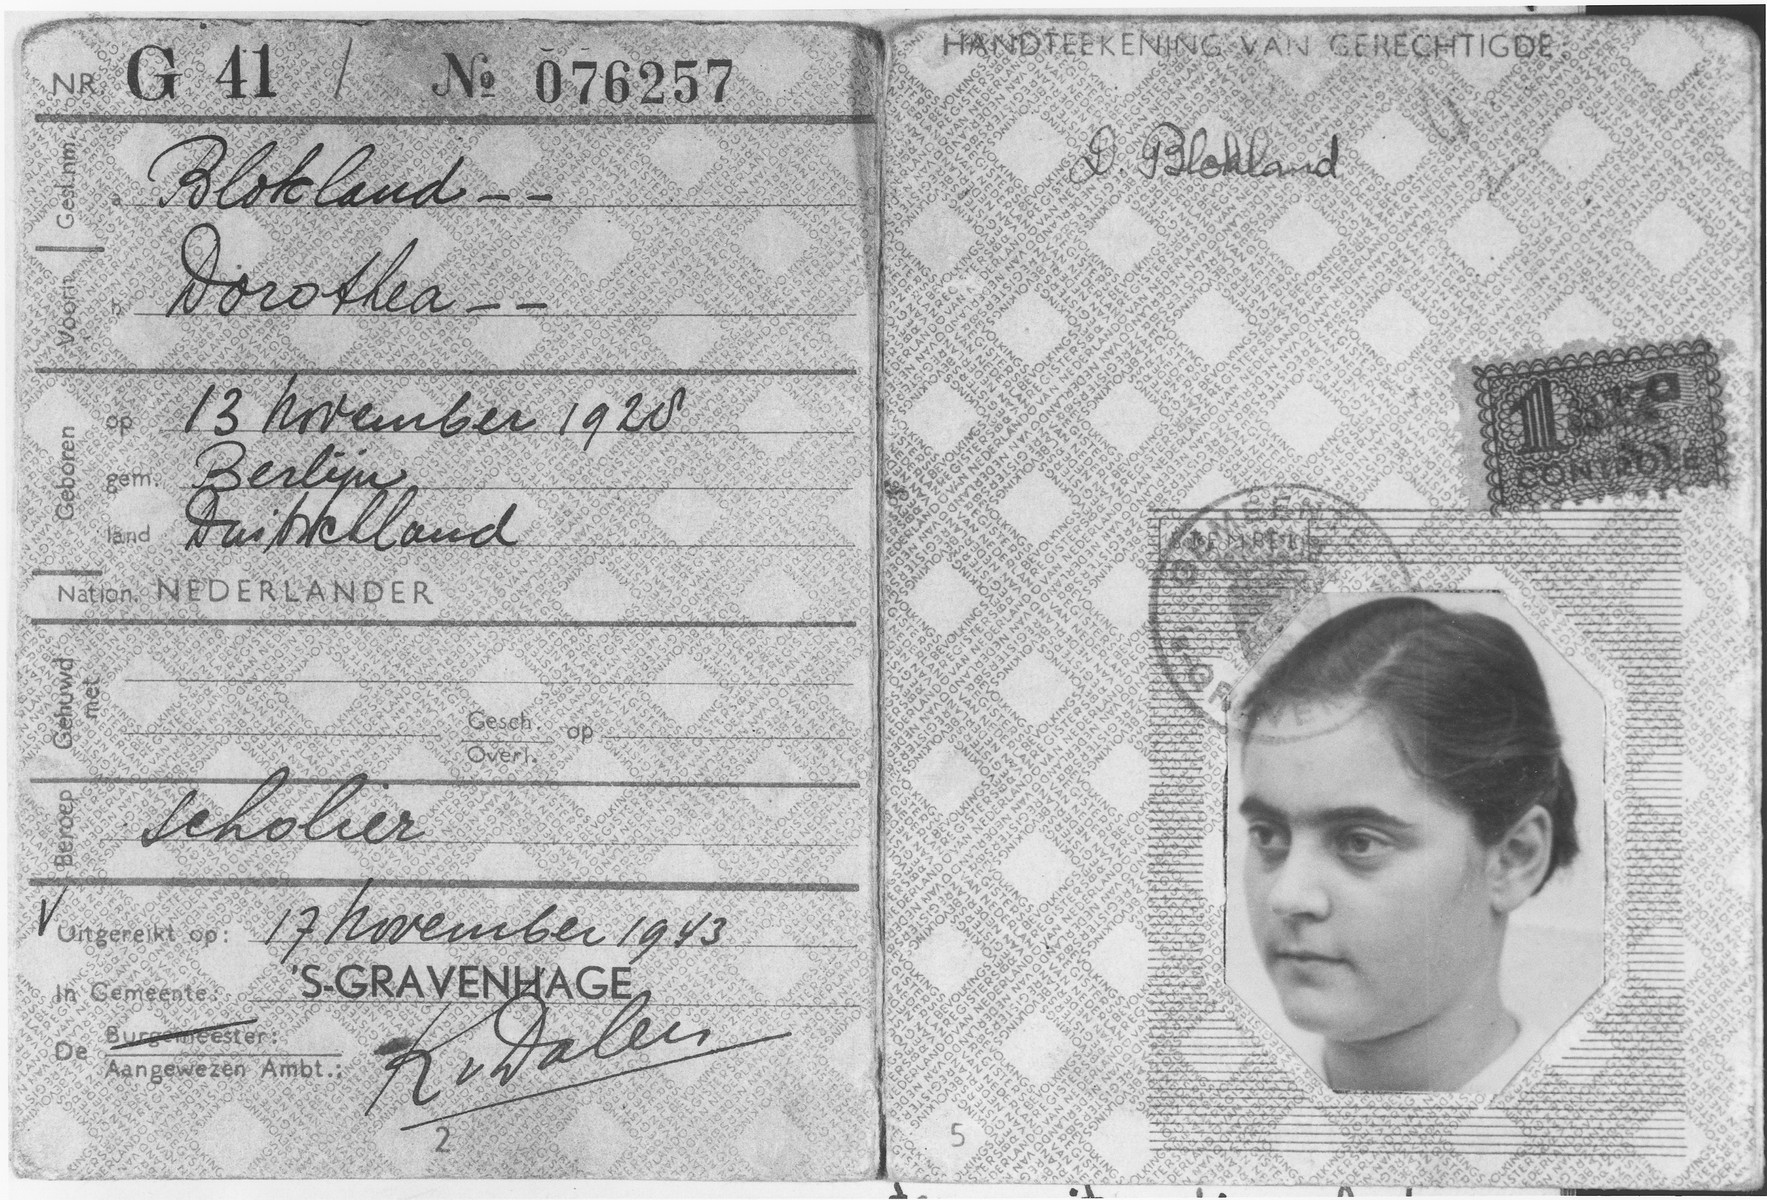 False identification card issued to Doris Bloch in the name of Dorothea Blokland.